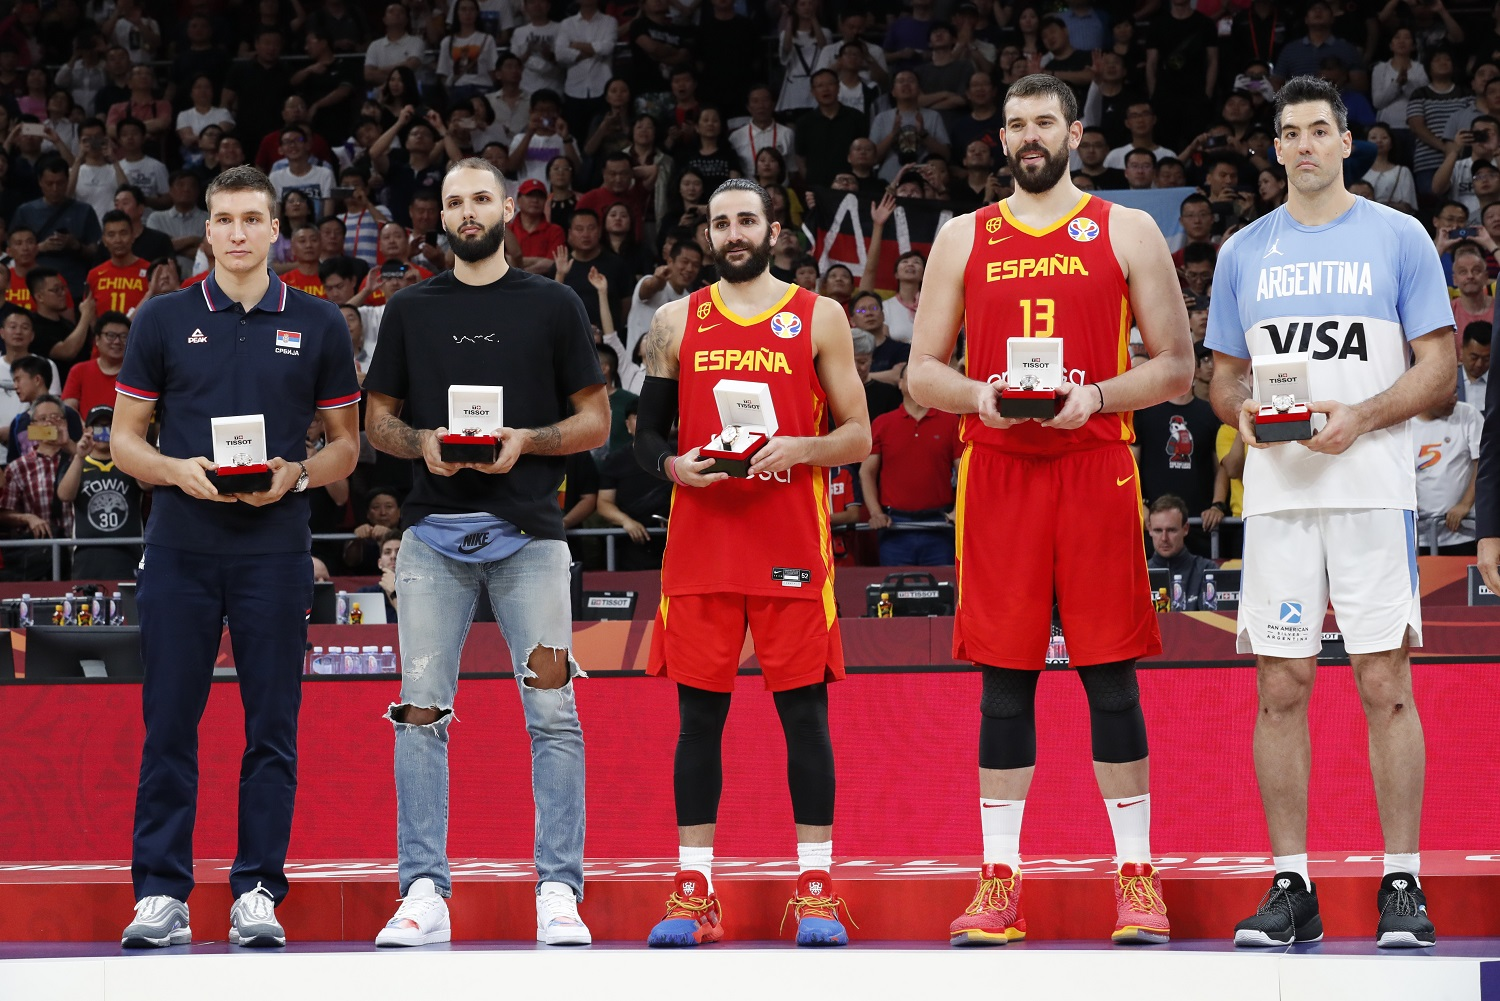 2019-09-15T152537Z_696747571_UP1EF9F16UP5Q_RTRMADP_3_BASKETBALL-WORLDCUP-ARG-ESP